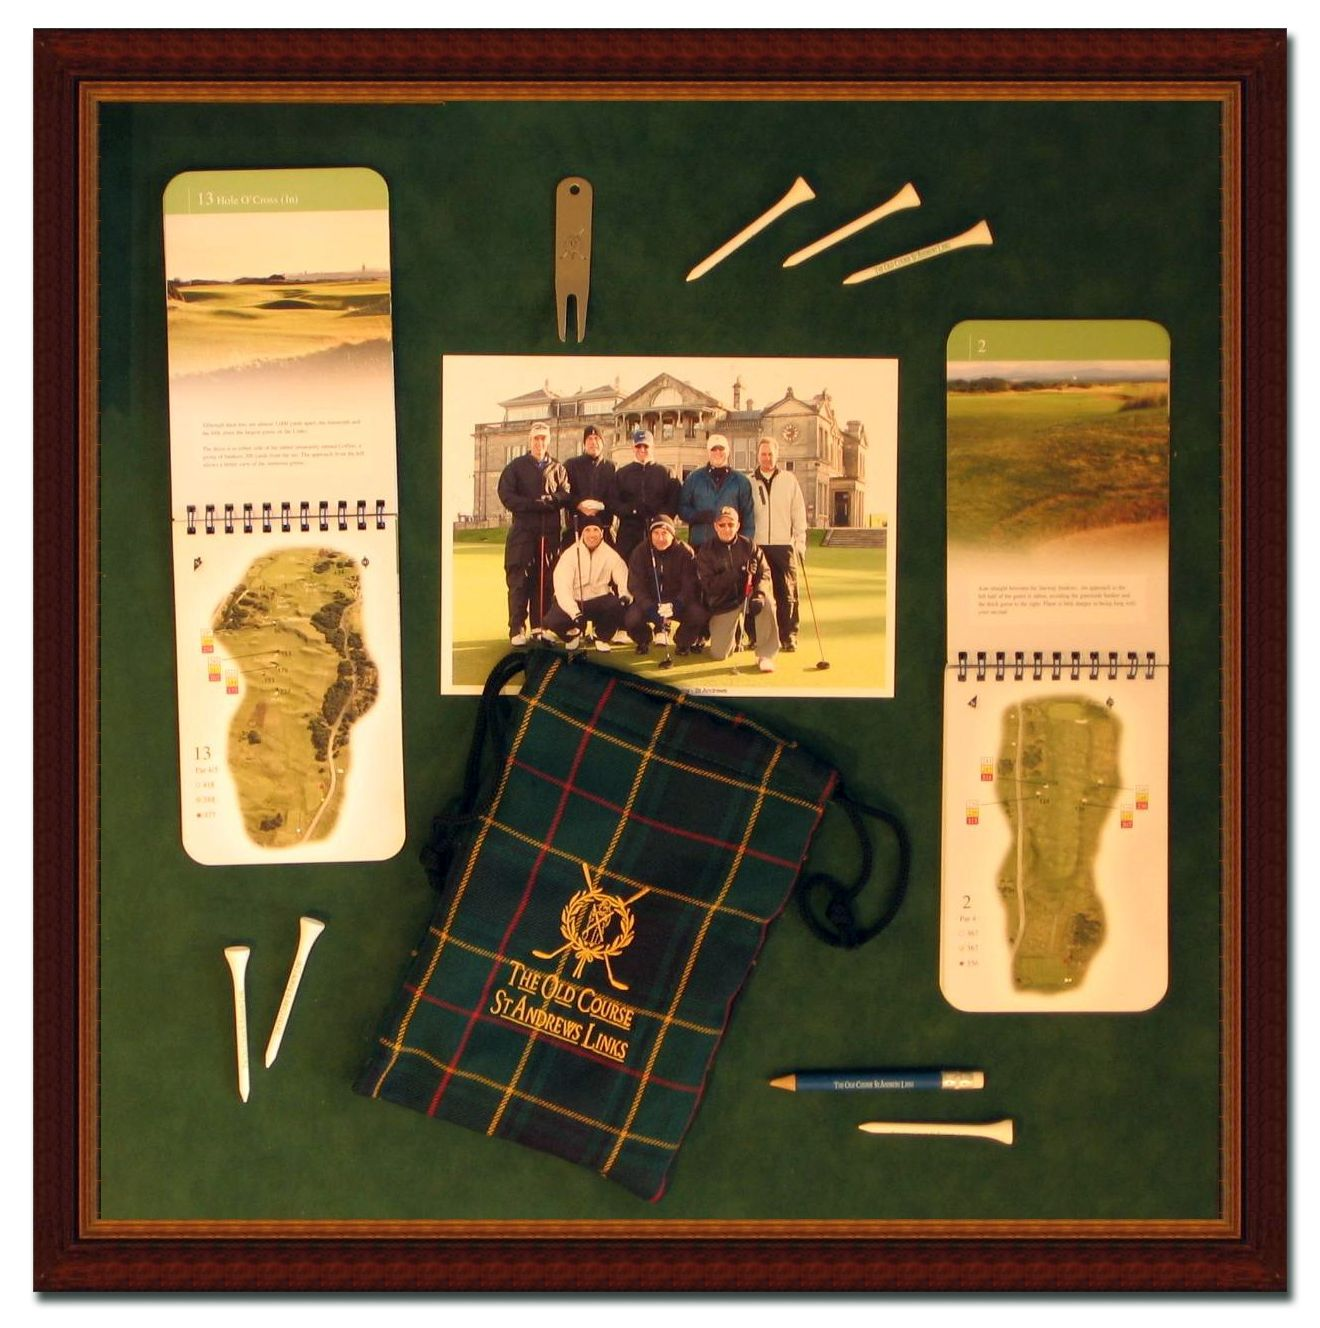 This Was A Fun Project Mementos From A Once In A Lifetime Trip To Scotland And The Old Course At St Andrews Are Properly Moun Shadow Box Golf Trip Old Things